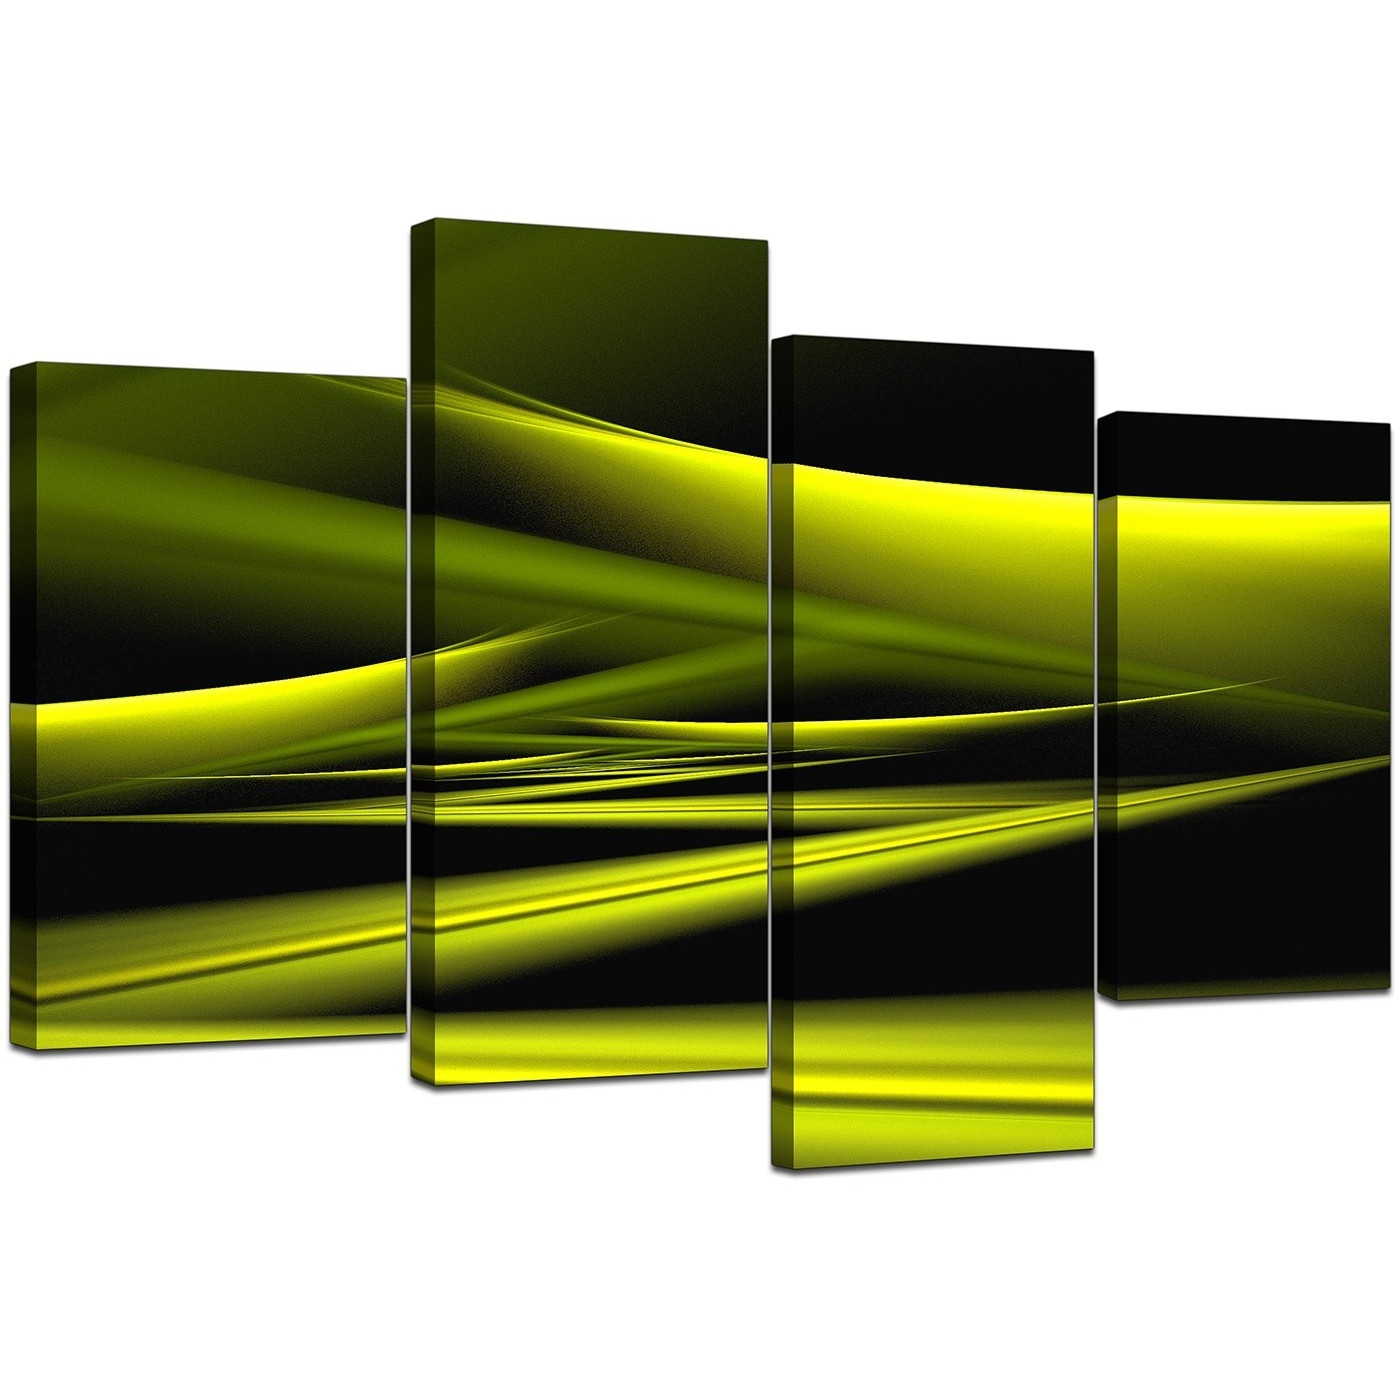 Abstract Canvas Pictures In Green For Your Living Room – Set Of 4 In Most Recent Lime Green Canvas Wall Art (View 3 of 15)